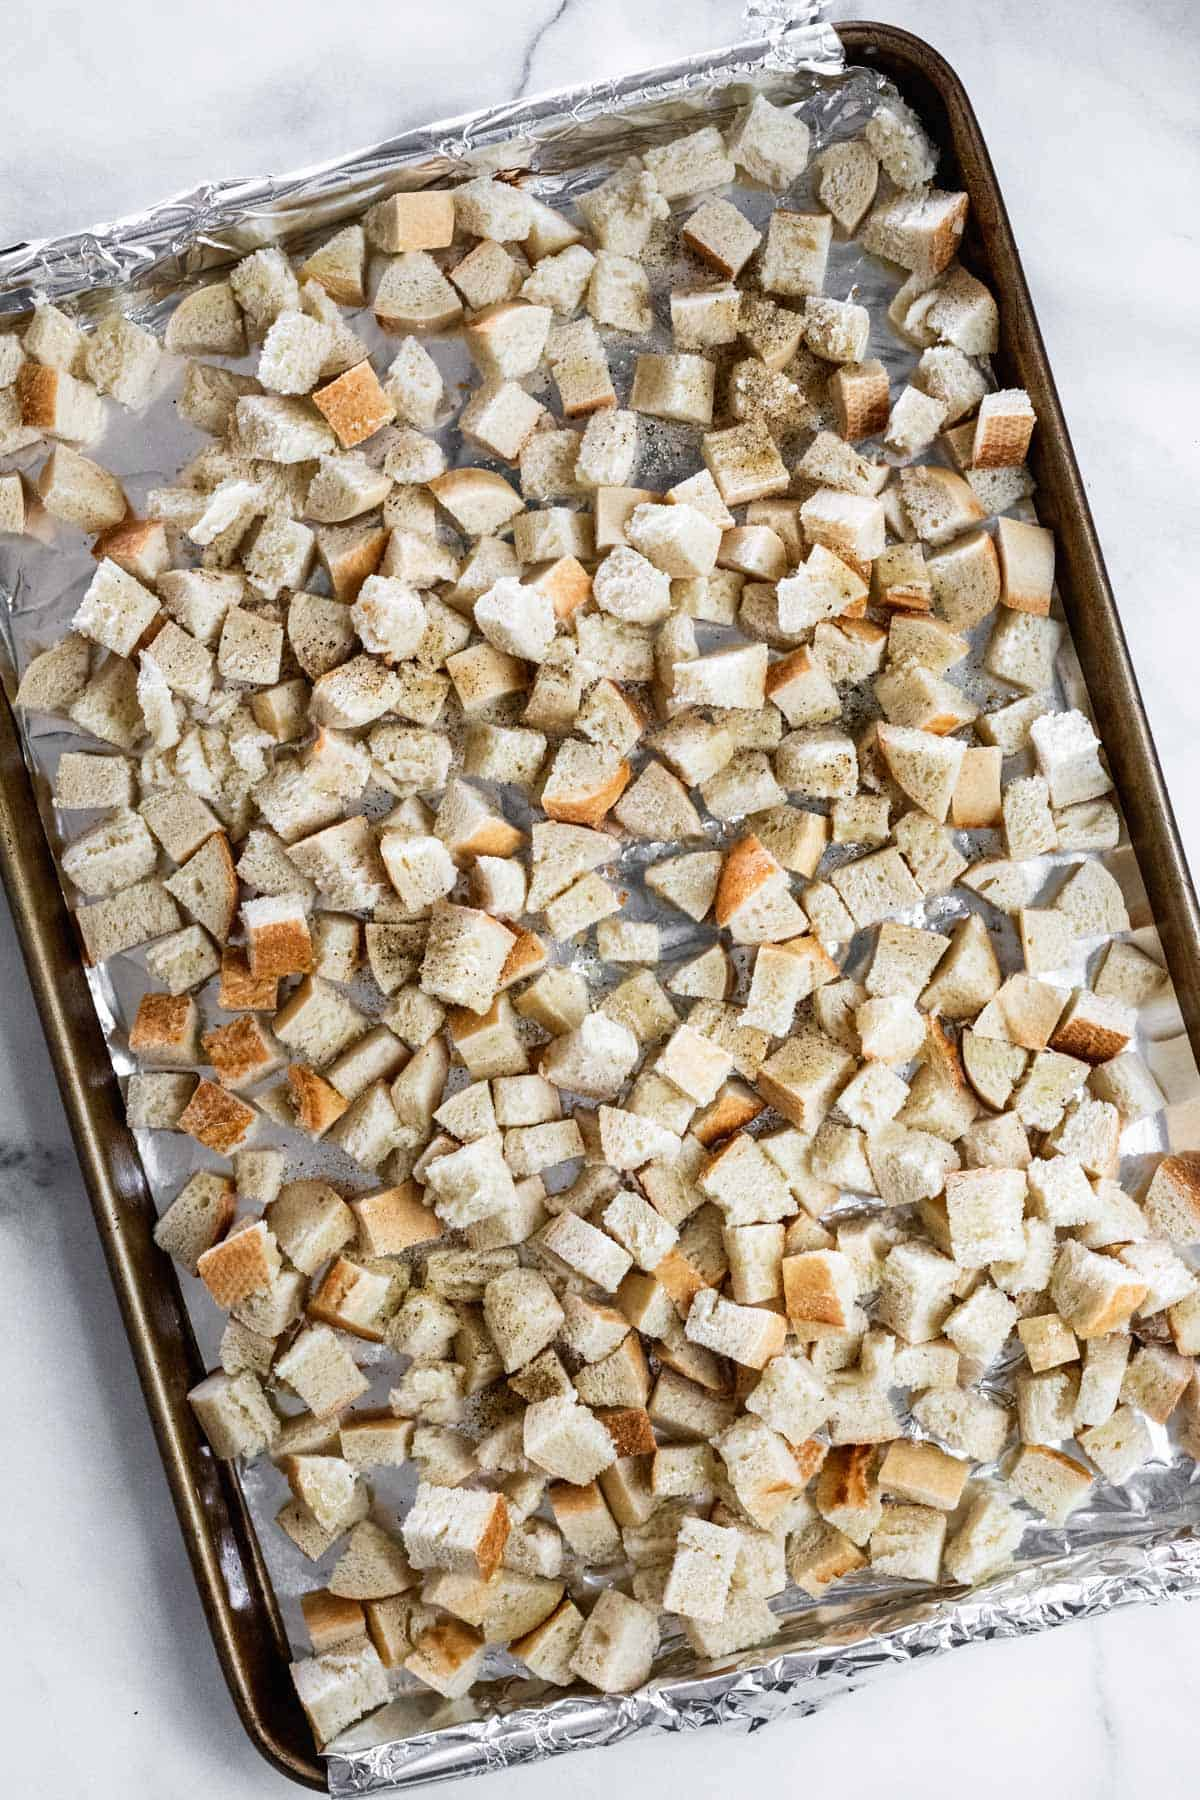 Diced and seasoned baguette on a sheet pan.